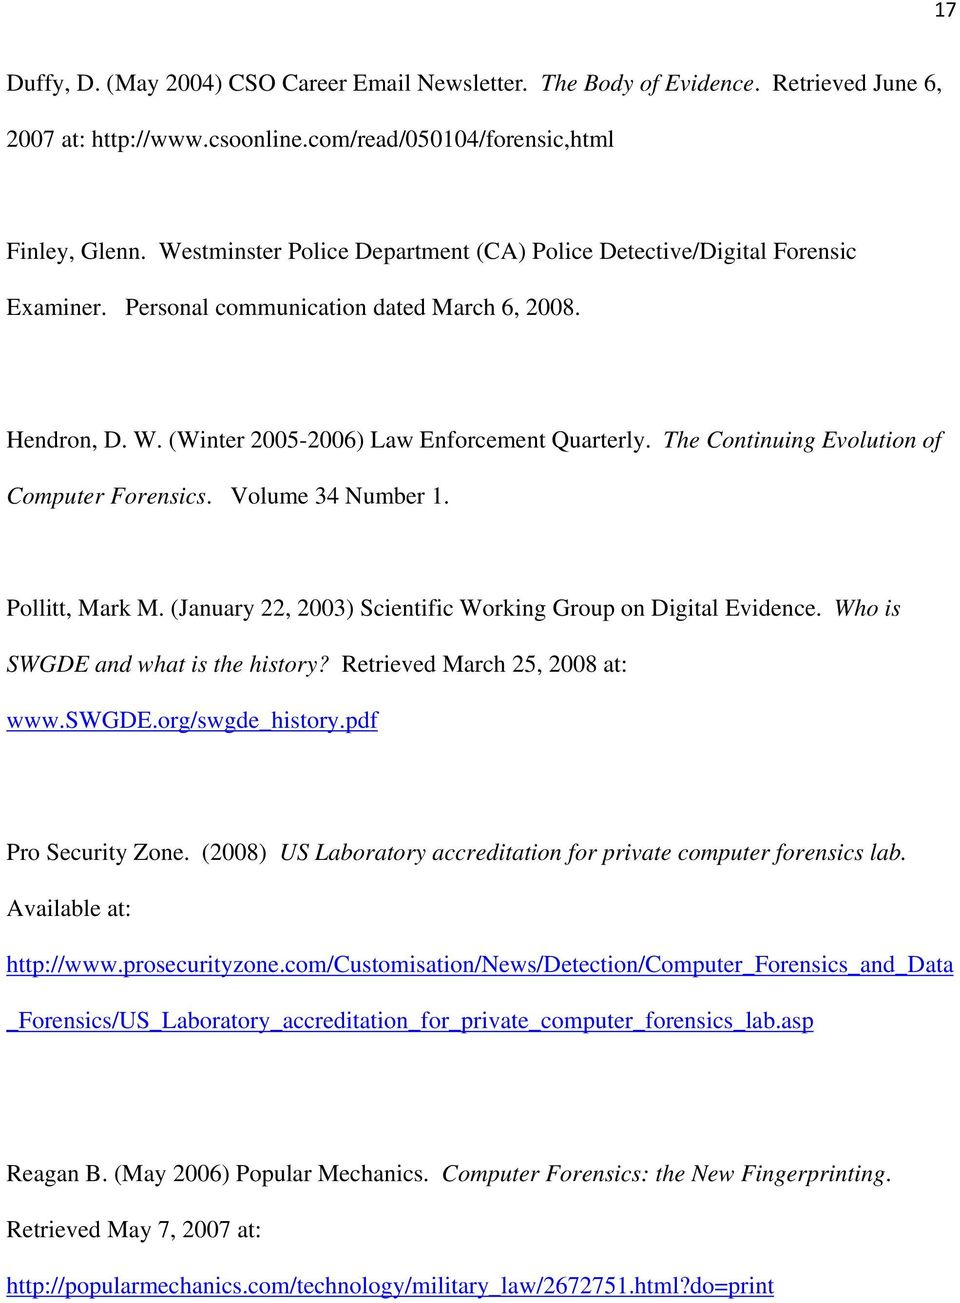 The Continuing Evolution of Computer Forensics. Volume 34 Number 1. Pollitt, Mark M. (January 22, 2003) Scientific Working Group on Digital Evidence. Who is SWGDE and what is the history?